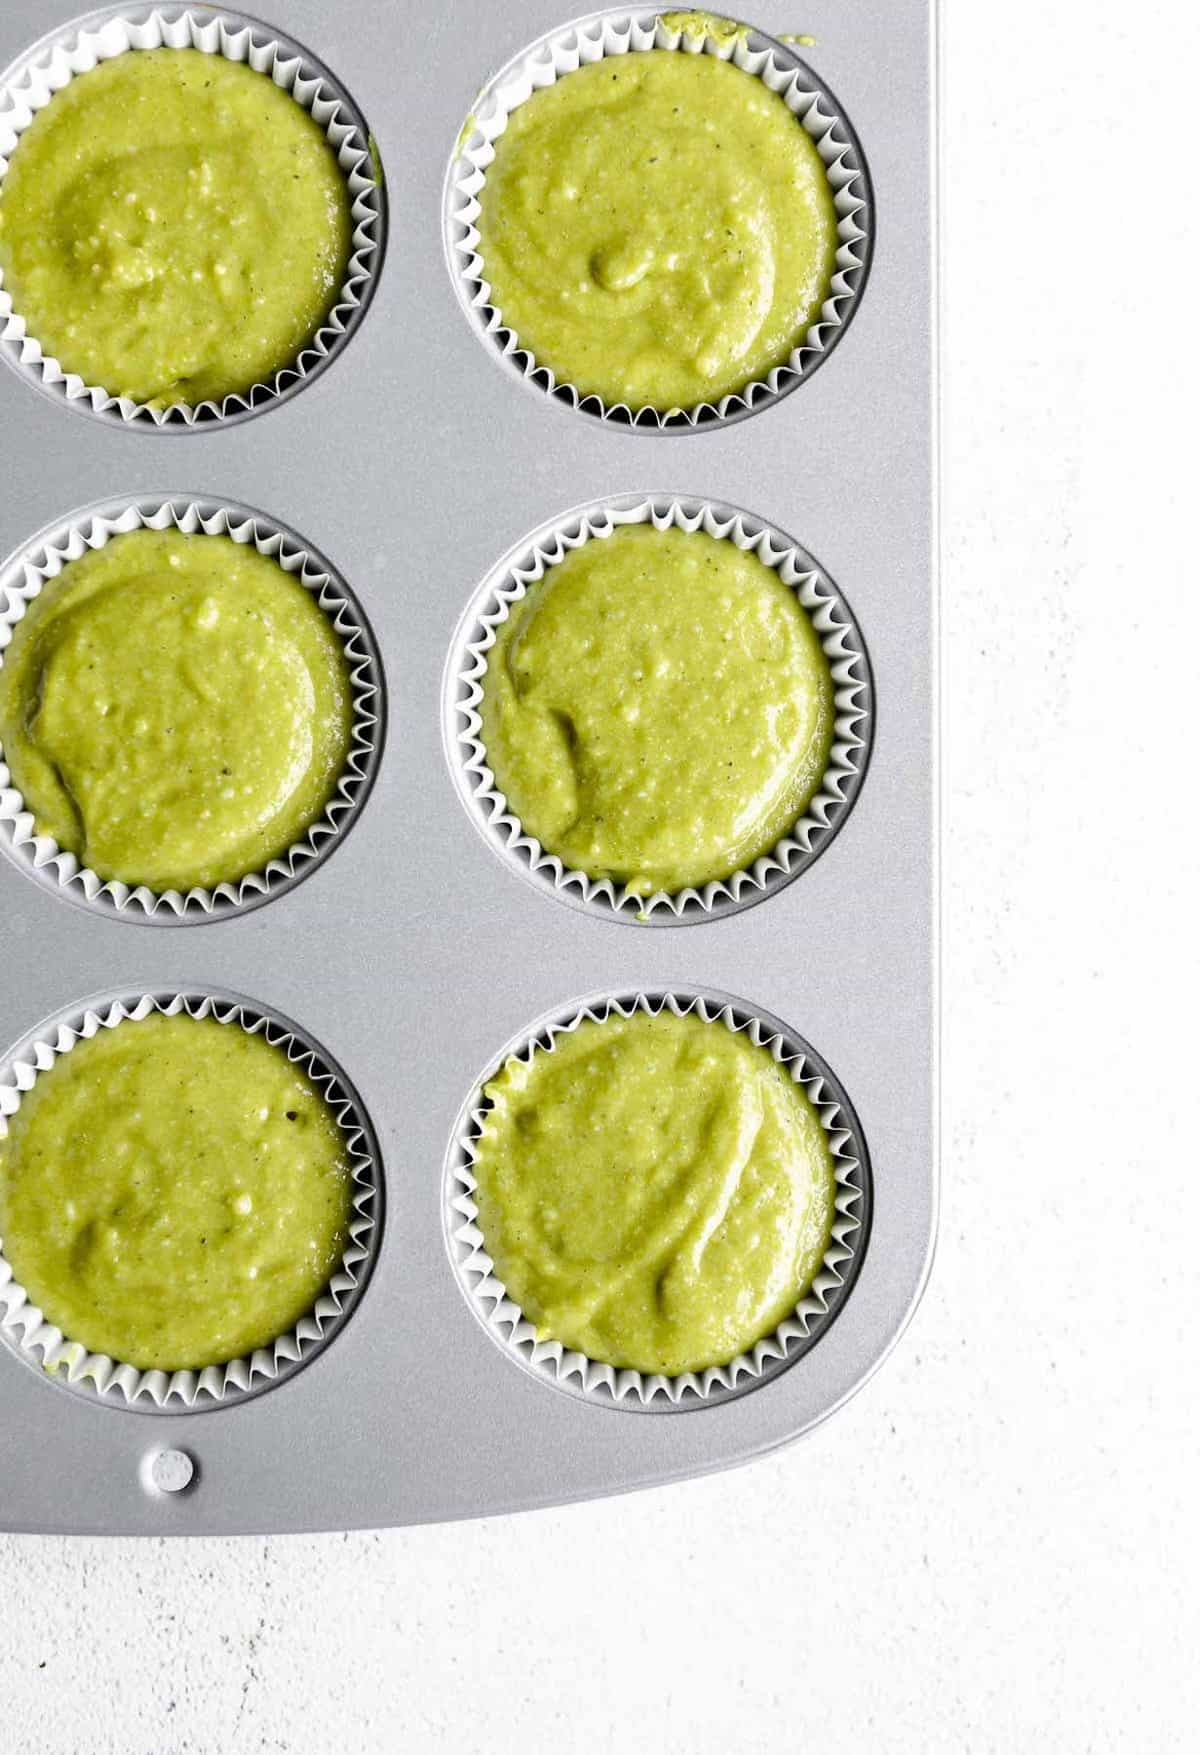 muffin batter in a tray before baking